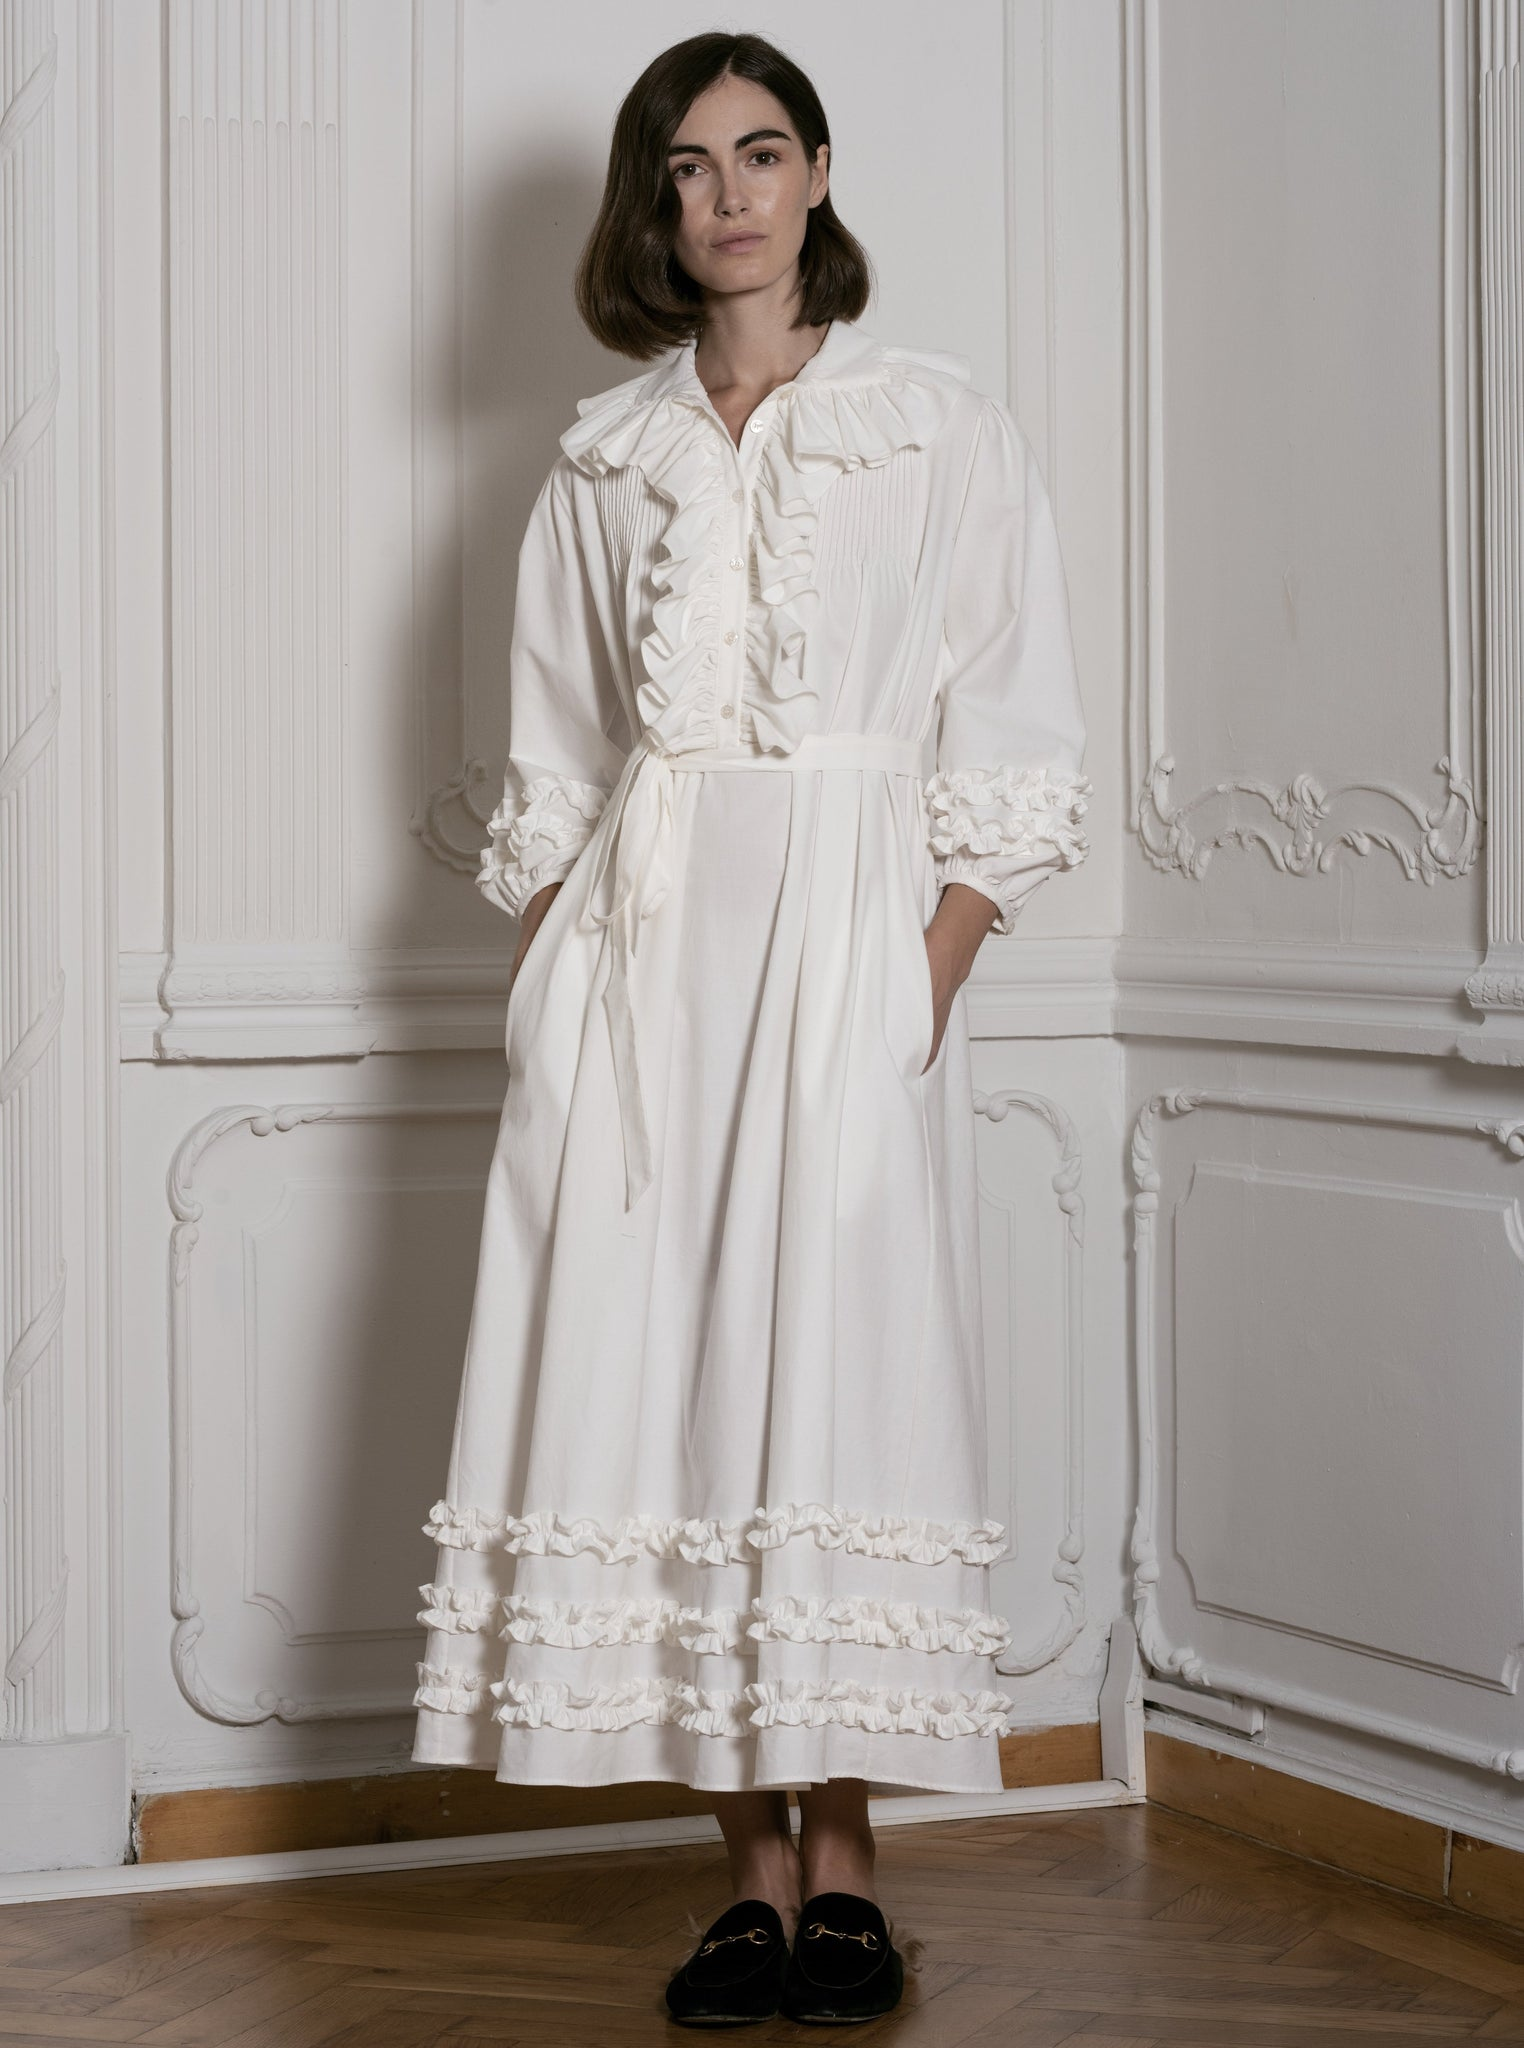 White Corduroy Dress With Ruffles